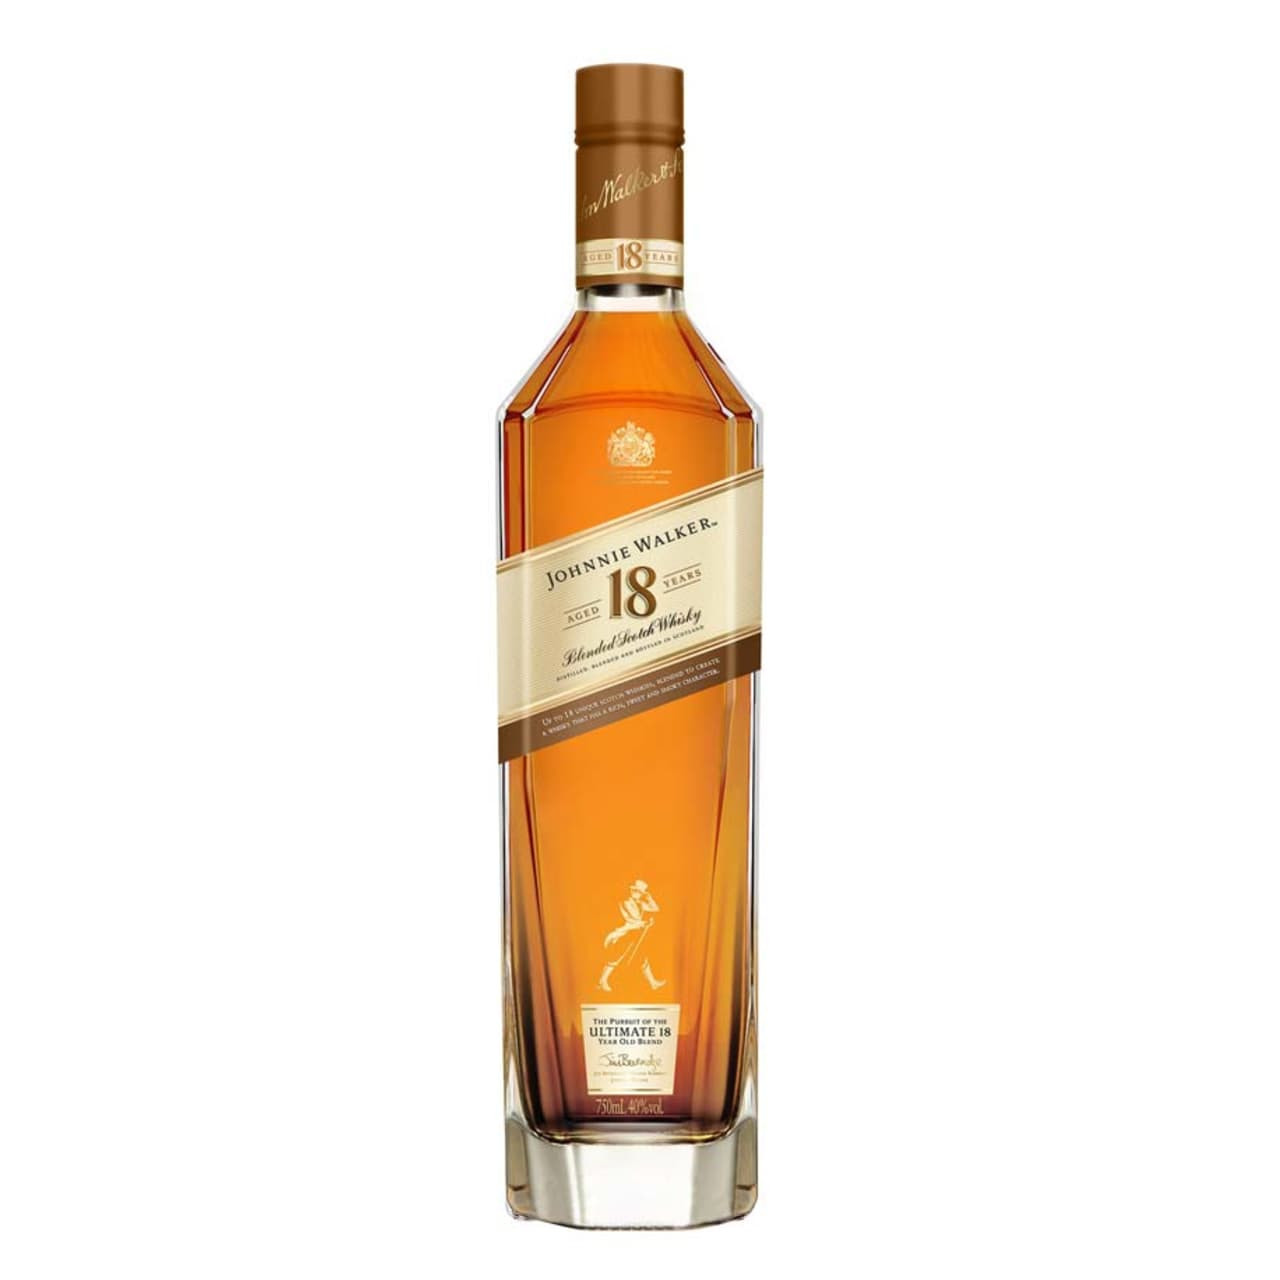 Product Image - Johnnie Walker Ultimate 18yo Whisky